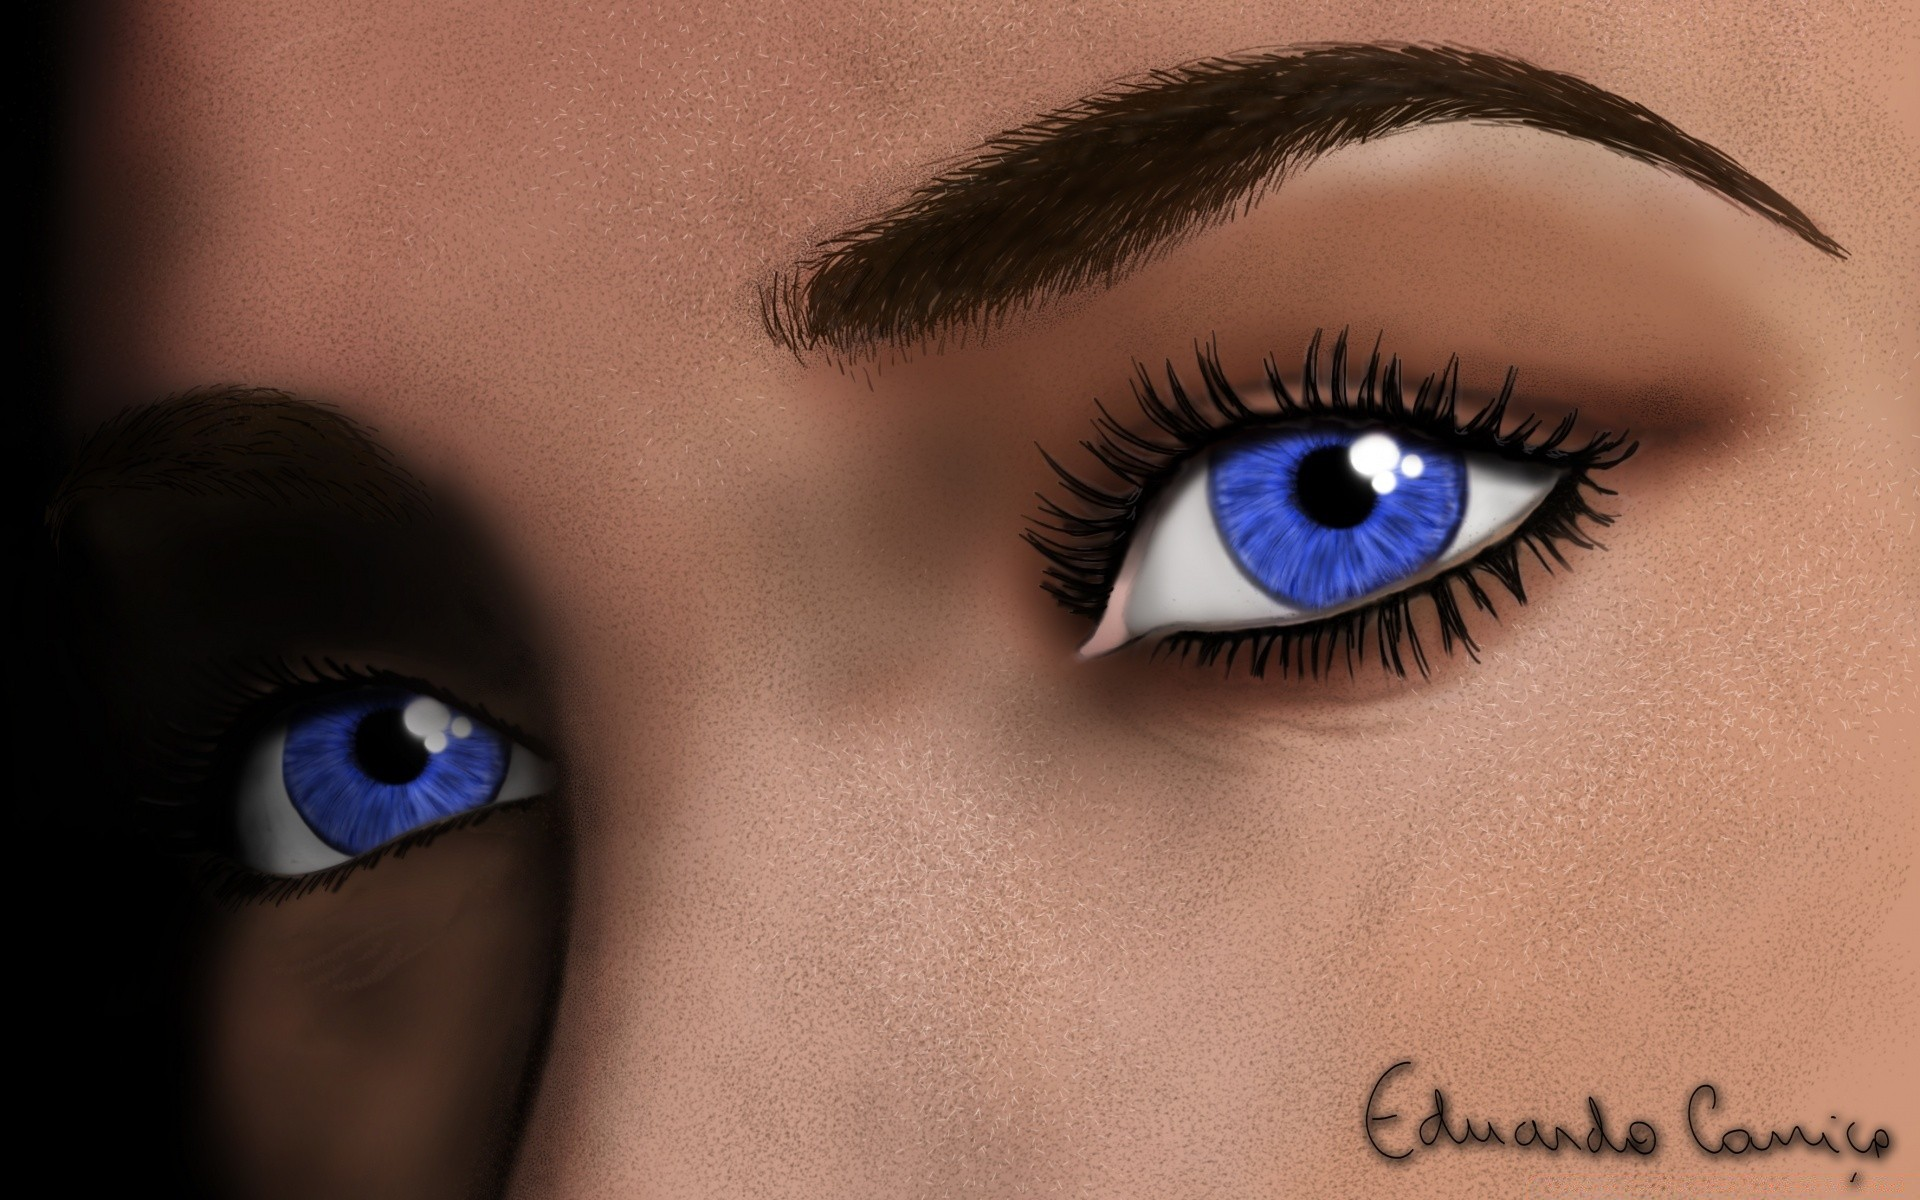 drawings eyeball woman eyesight eyelash glamour eye fashion